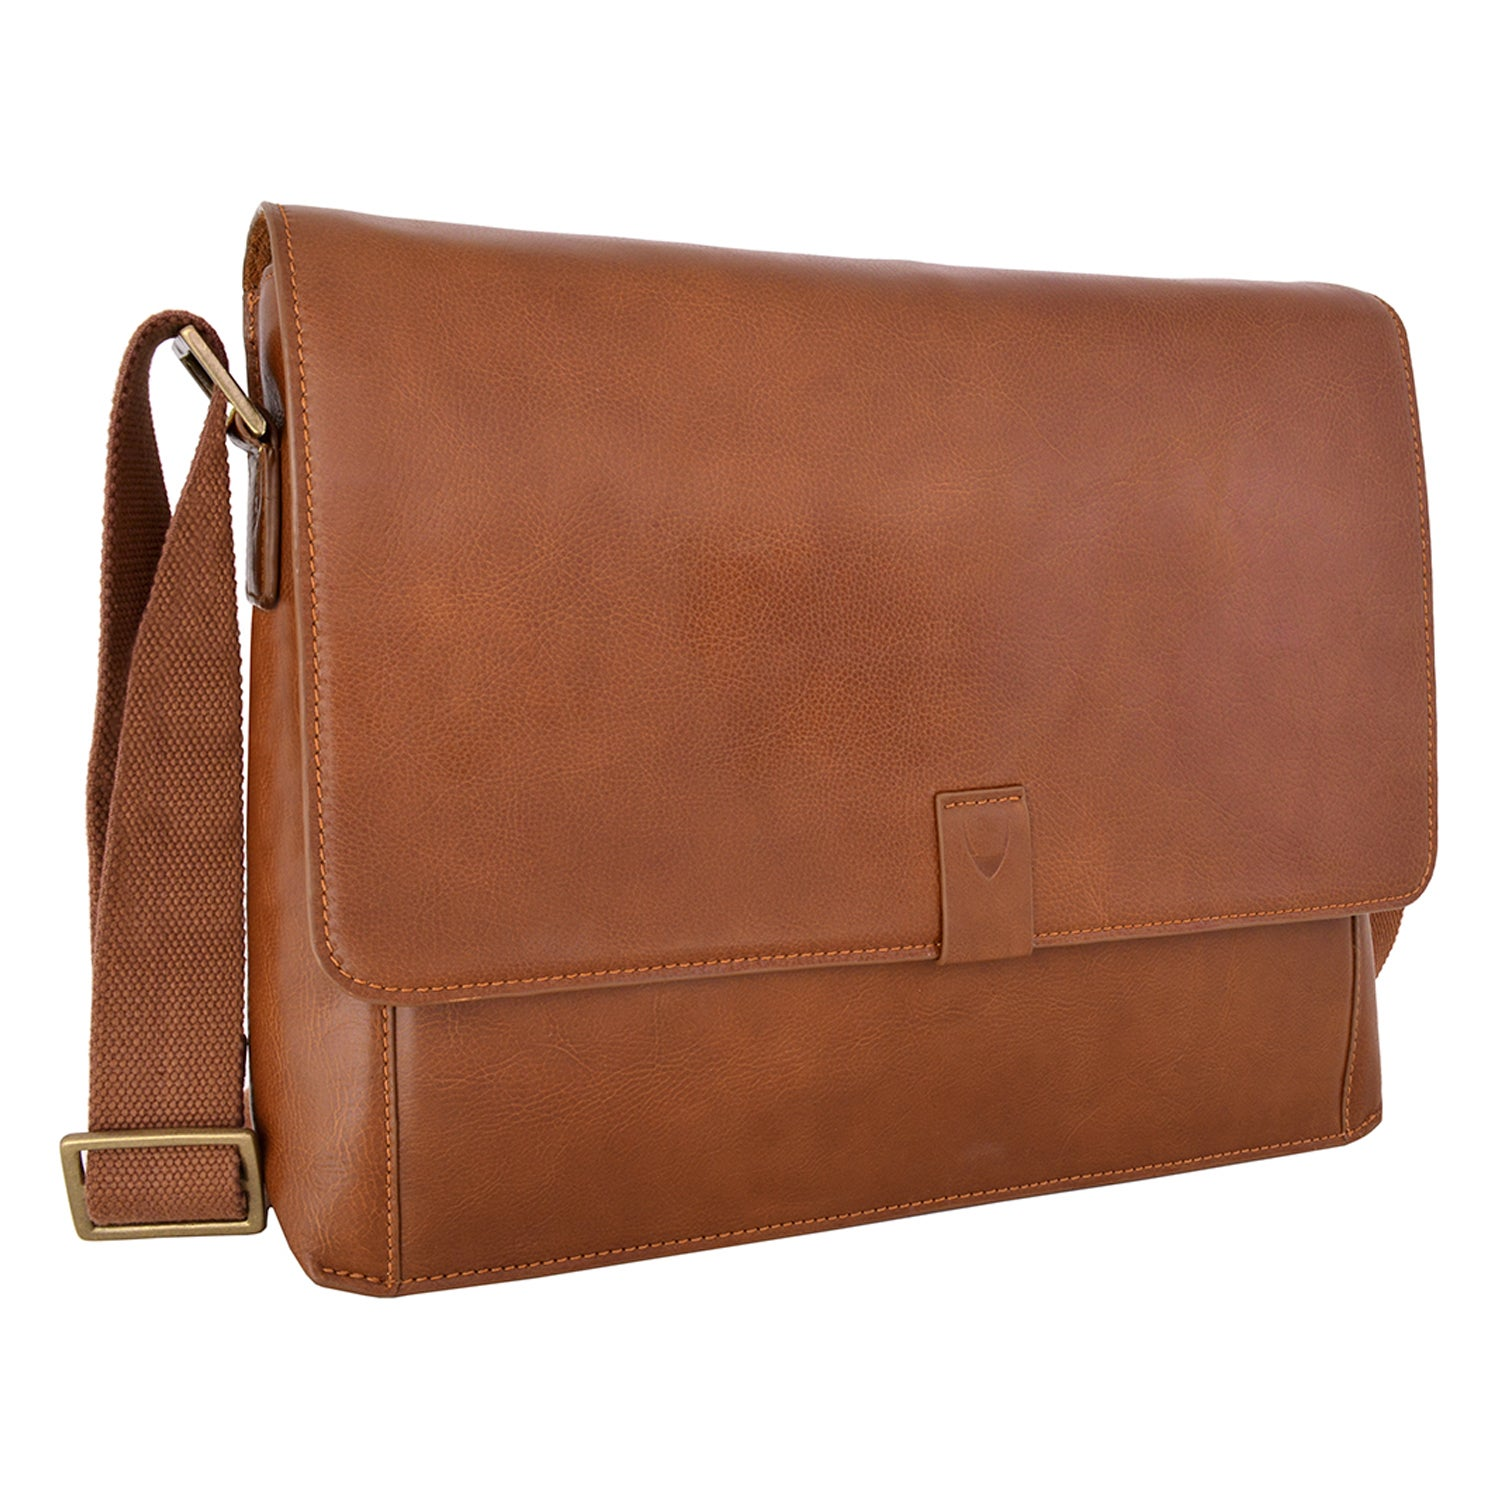 Shop Hidesign Aiden 03 Tan Leather Horizontal Messenger Bag - Ships To  Canada - Overstock - 14341761 3b2ae9625057a